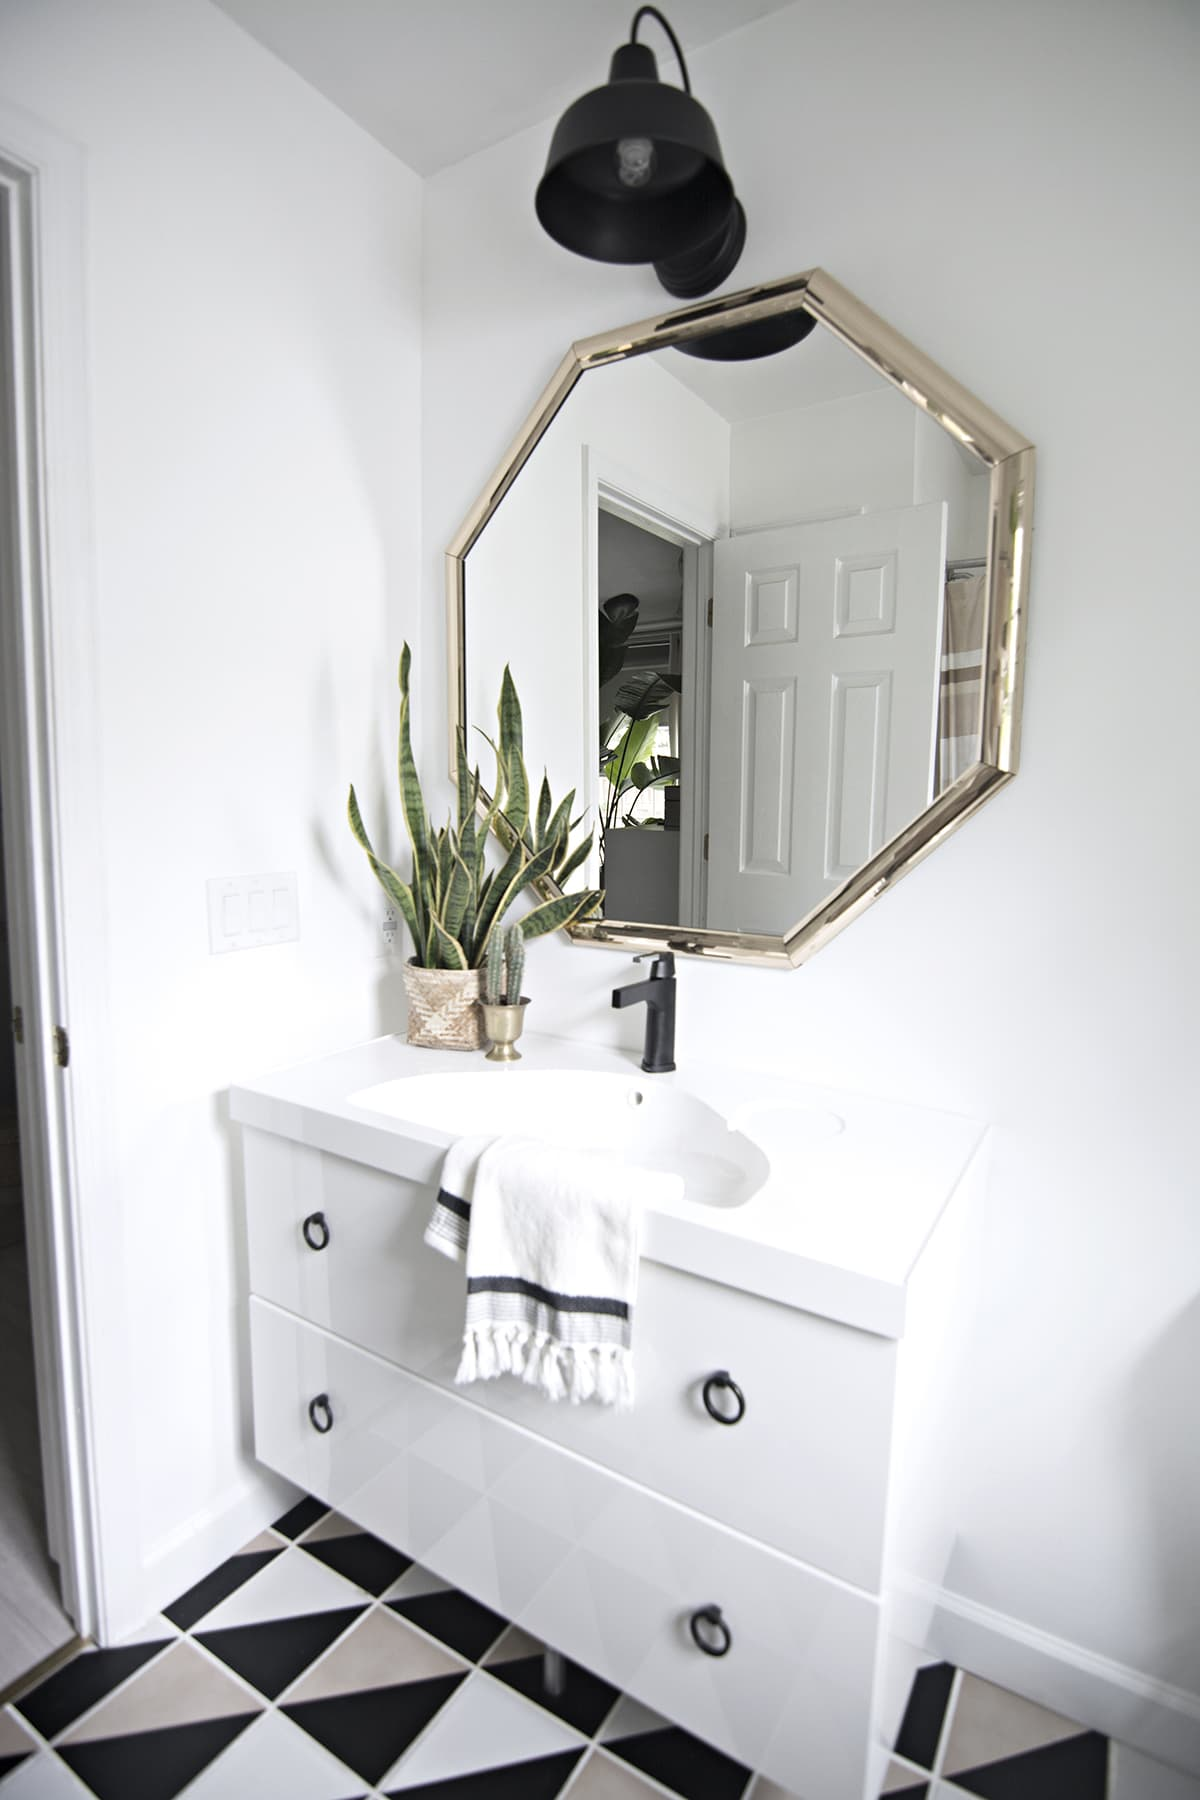 Installing A Delta Touch Faucet On An Ikea Floating Vanity Cuckoo4design